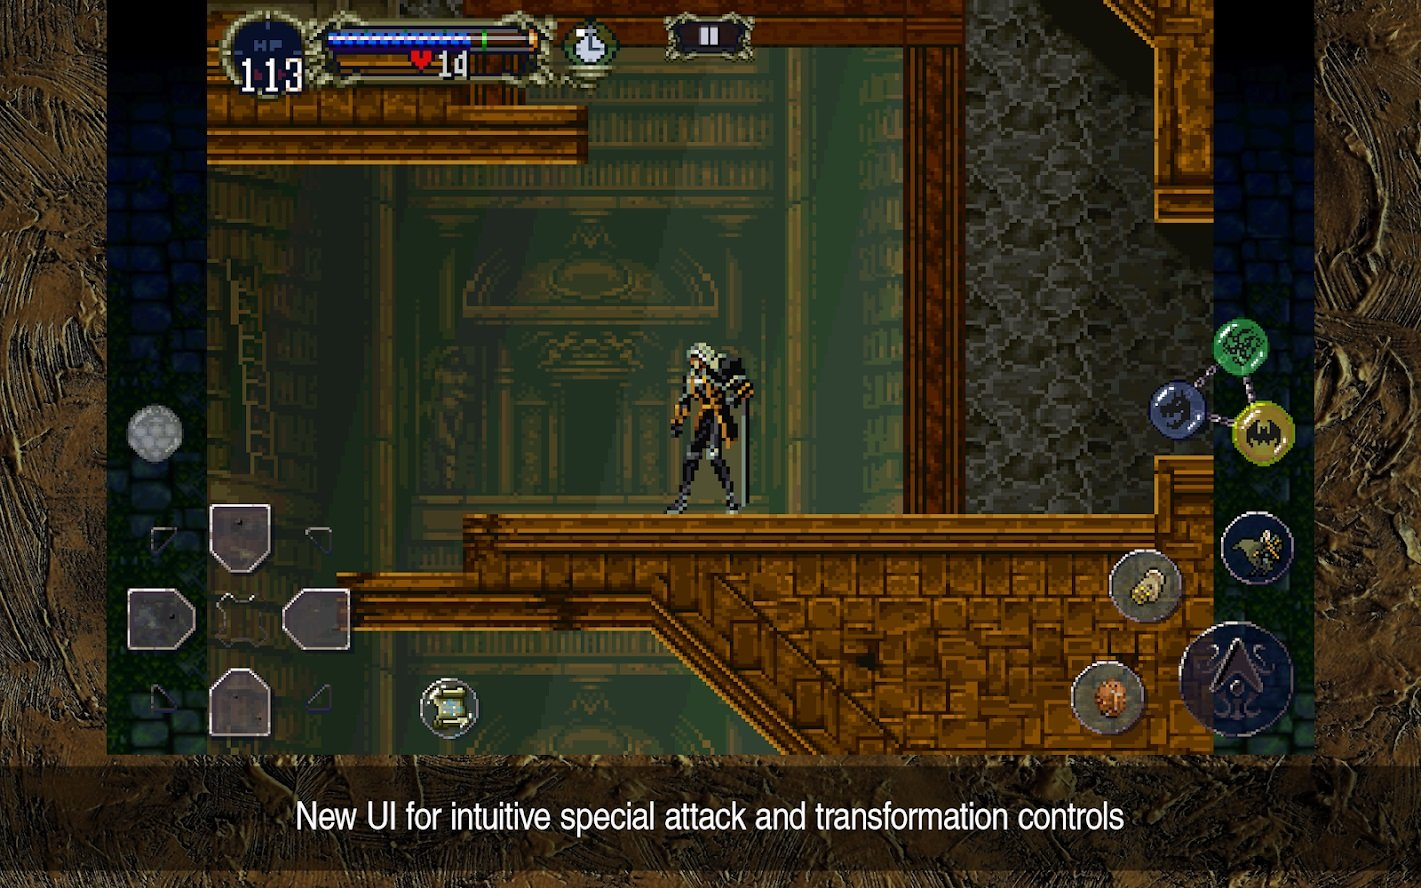 Castlevania mobile game now available on iOS and Android